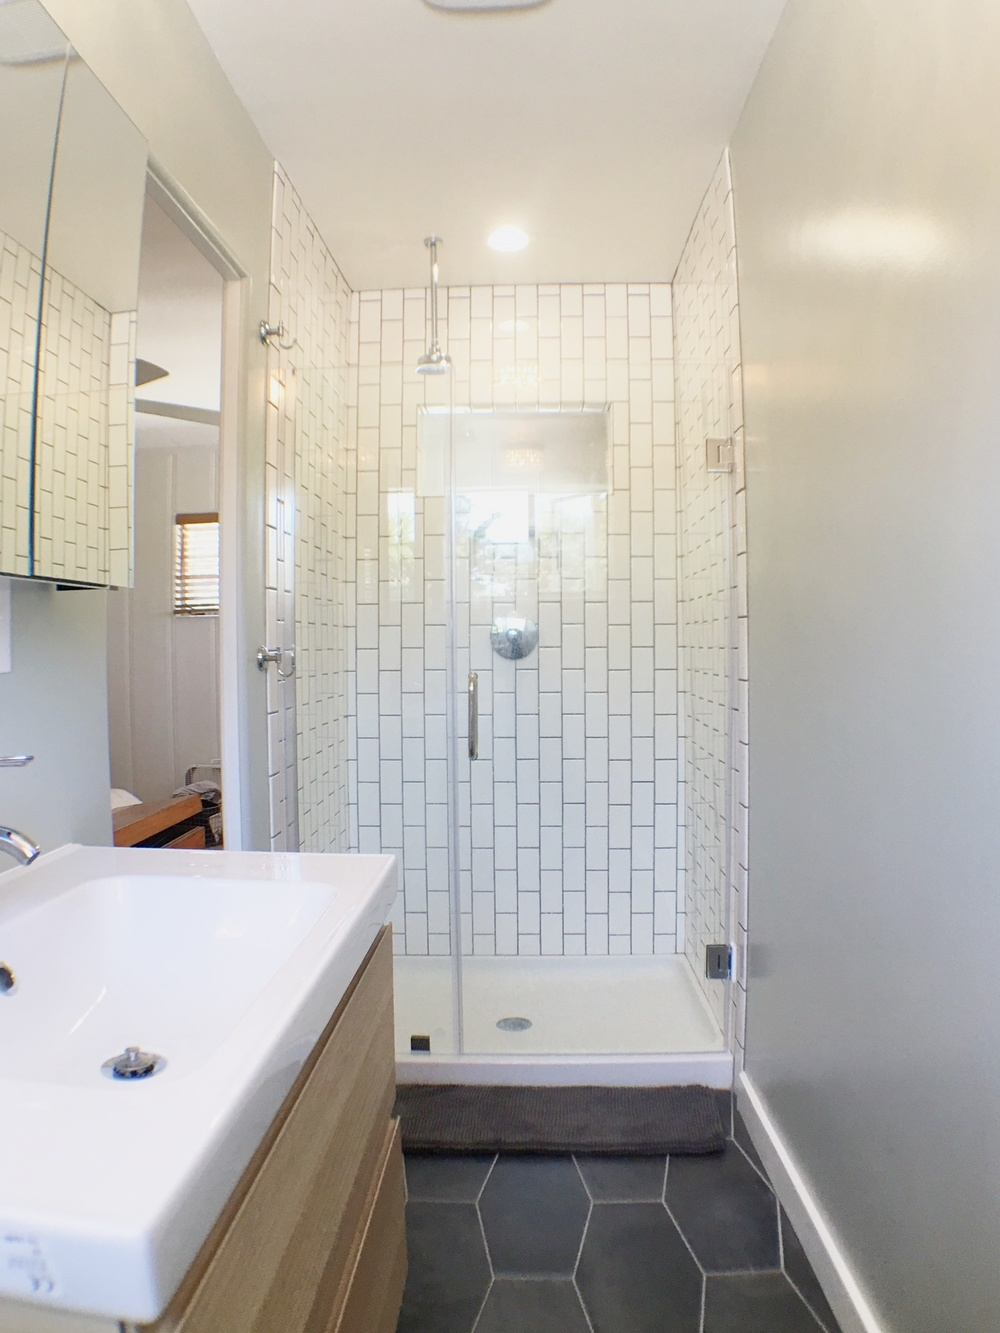 Drum roll, please. Here is my new shower! We did it super basic with white subway tile. Grout is Delorean Gray. We turned them on their sides, just for something different.